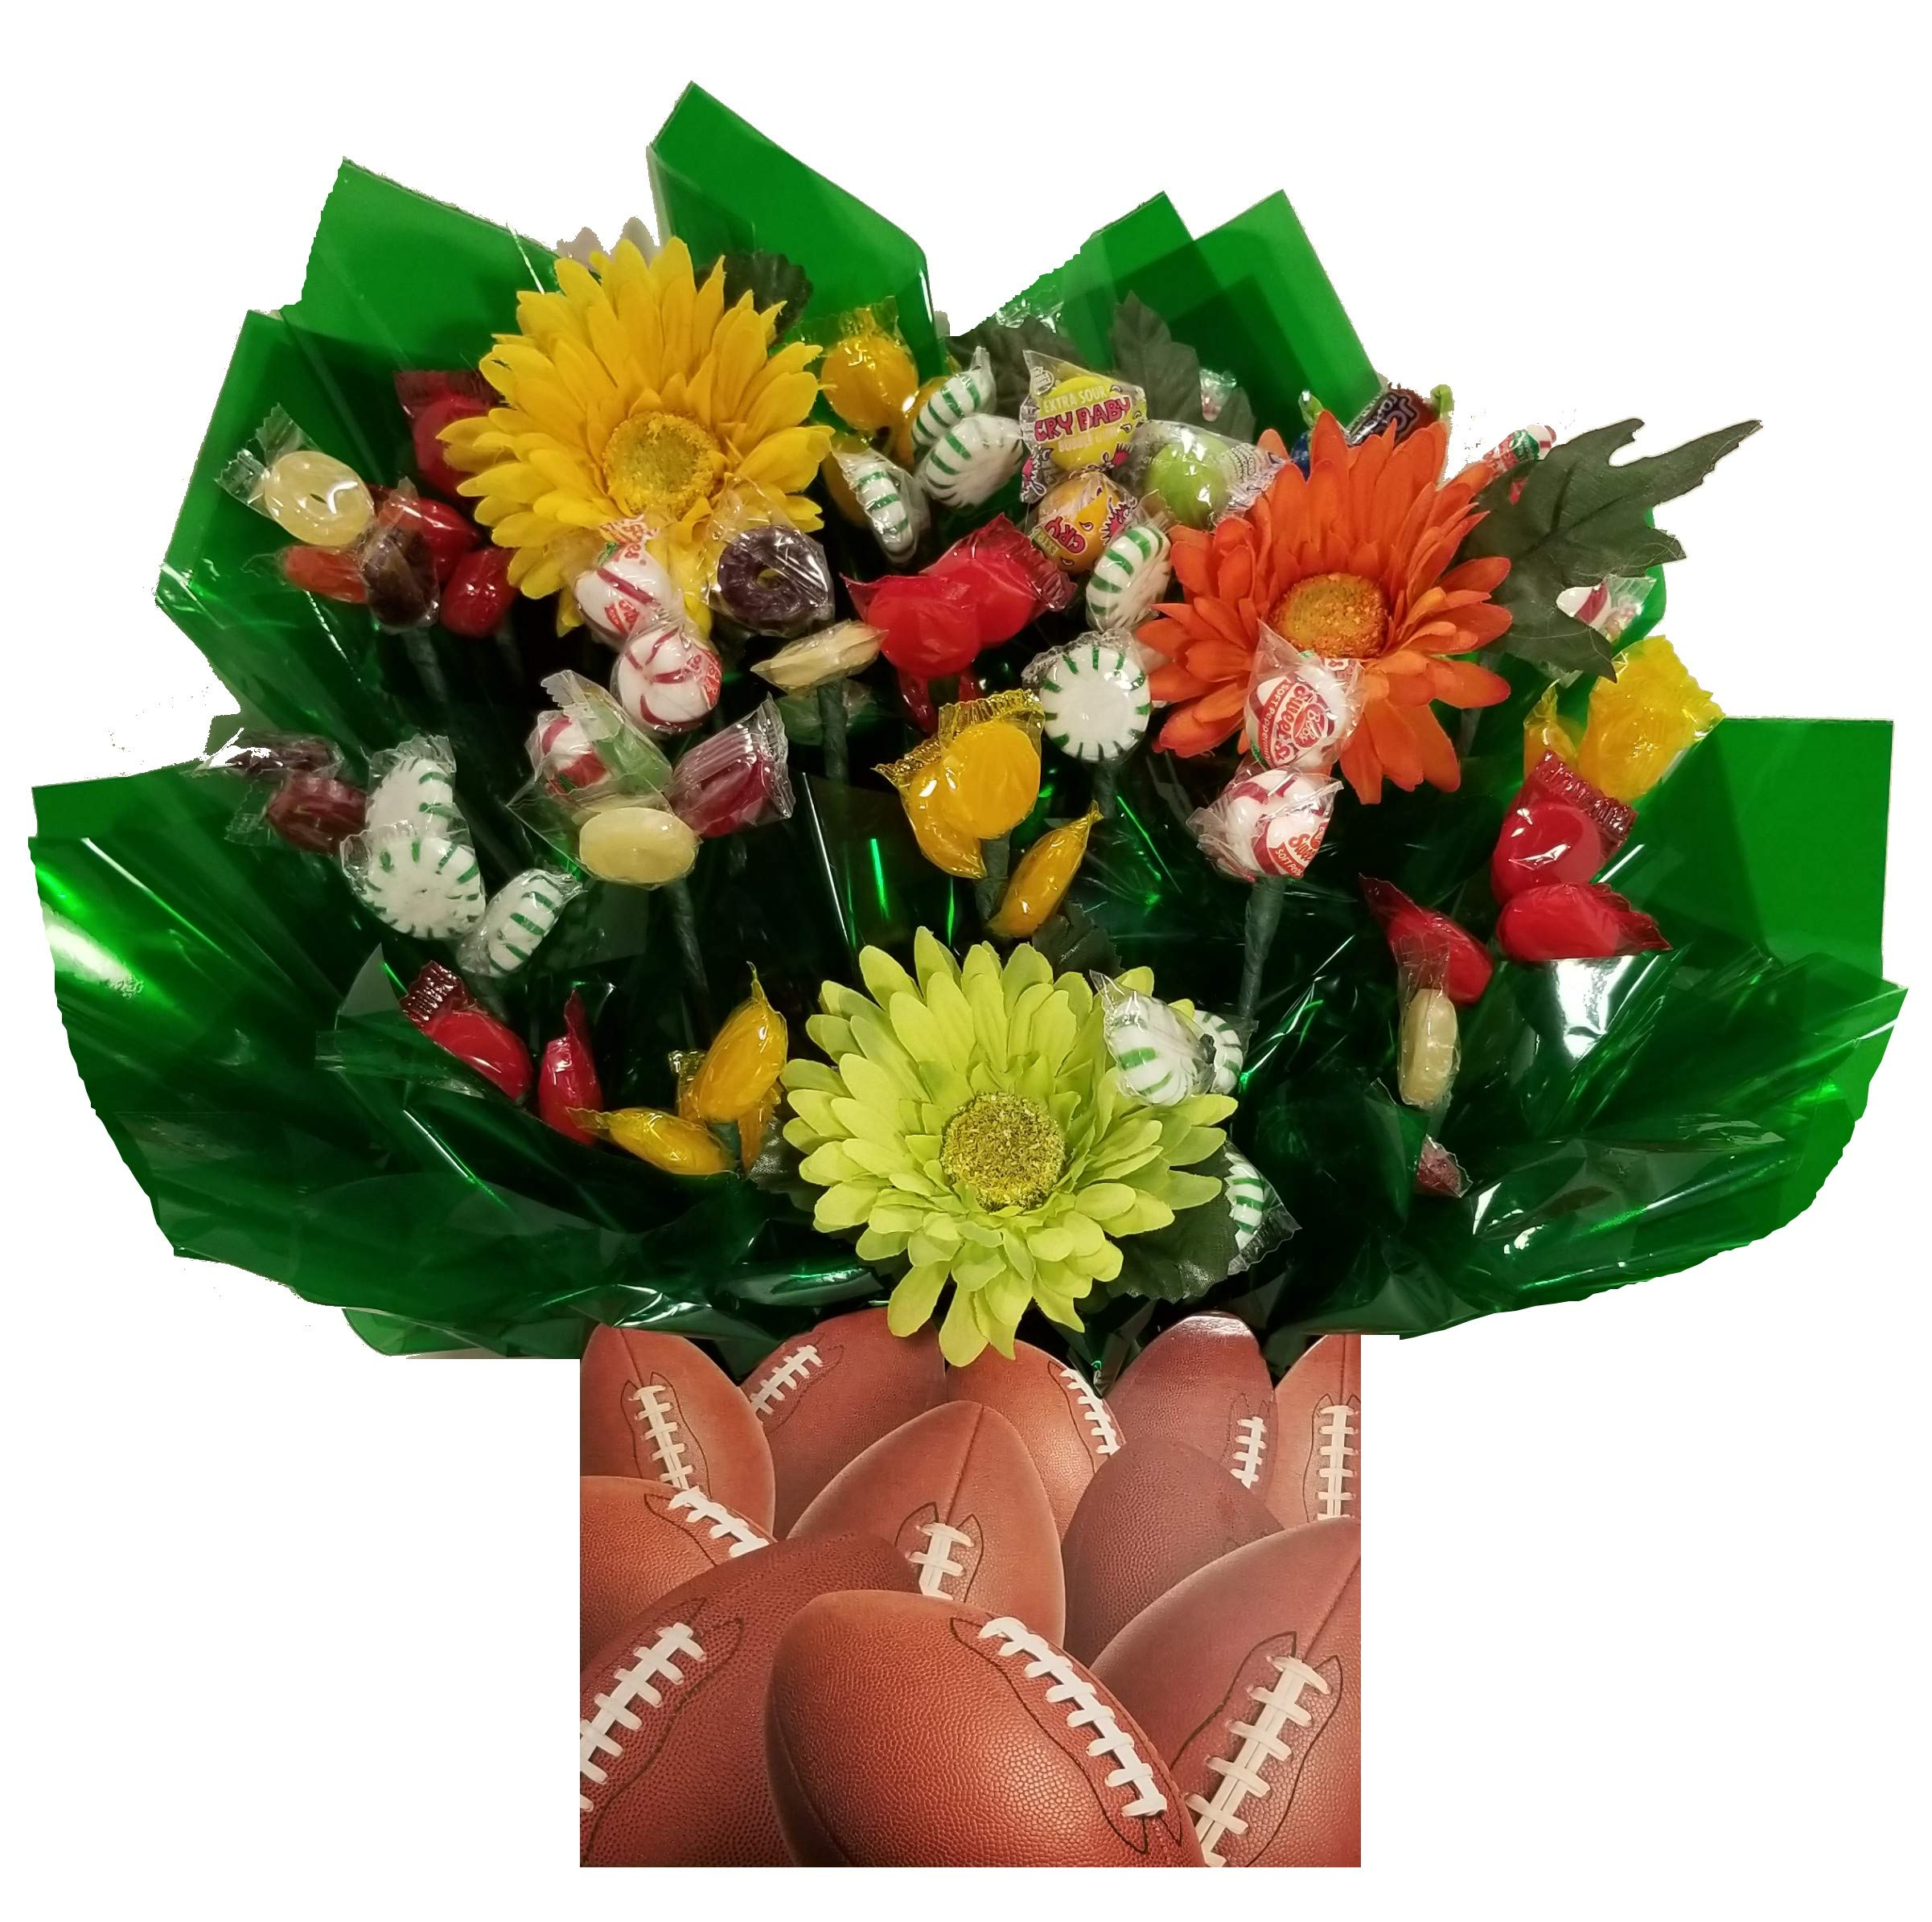 Football Gift Box with Hard Candy Bouquet - Great as a Birthday, Thank You, Get Well Soon, New Baby, New Home, Congratulations gift or for any occasion (Many OPTIONS available) by So Sweet of You